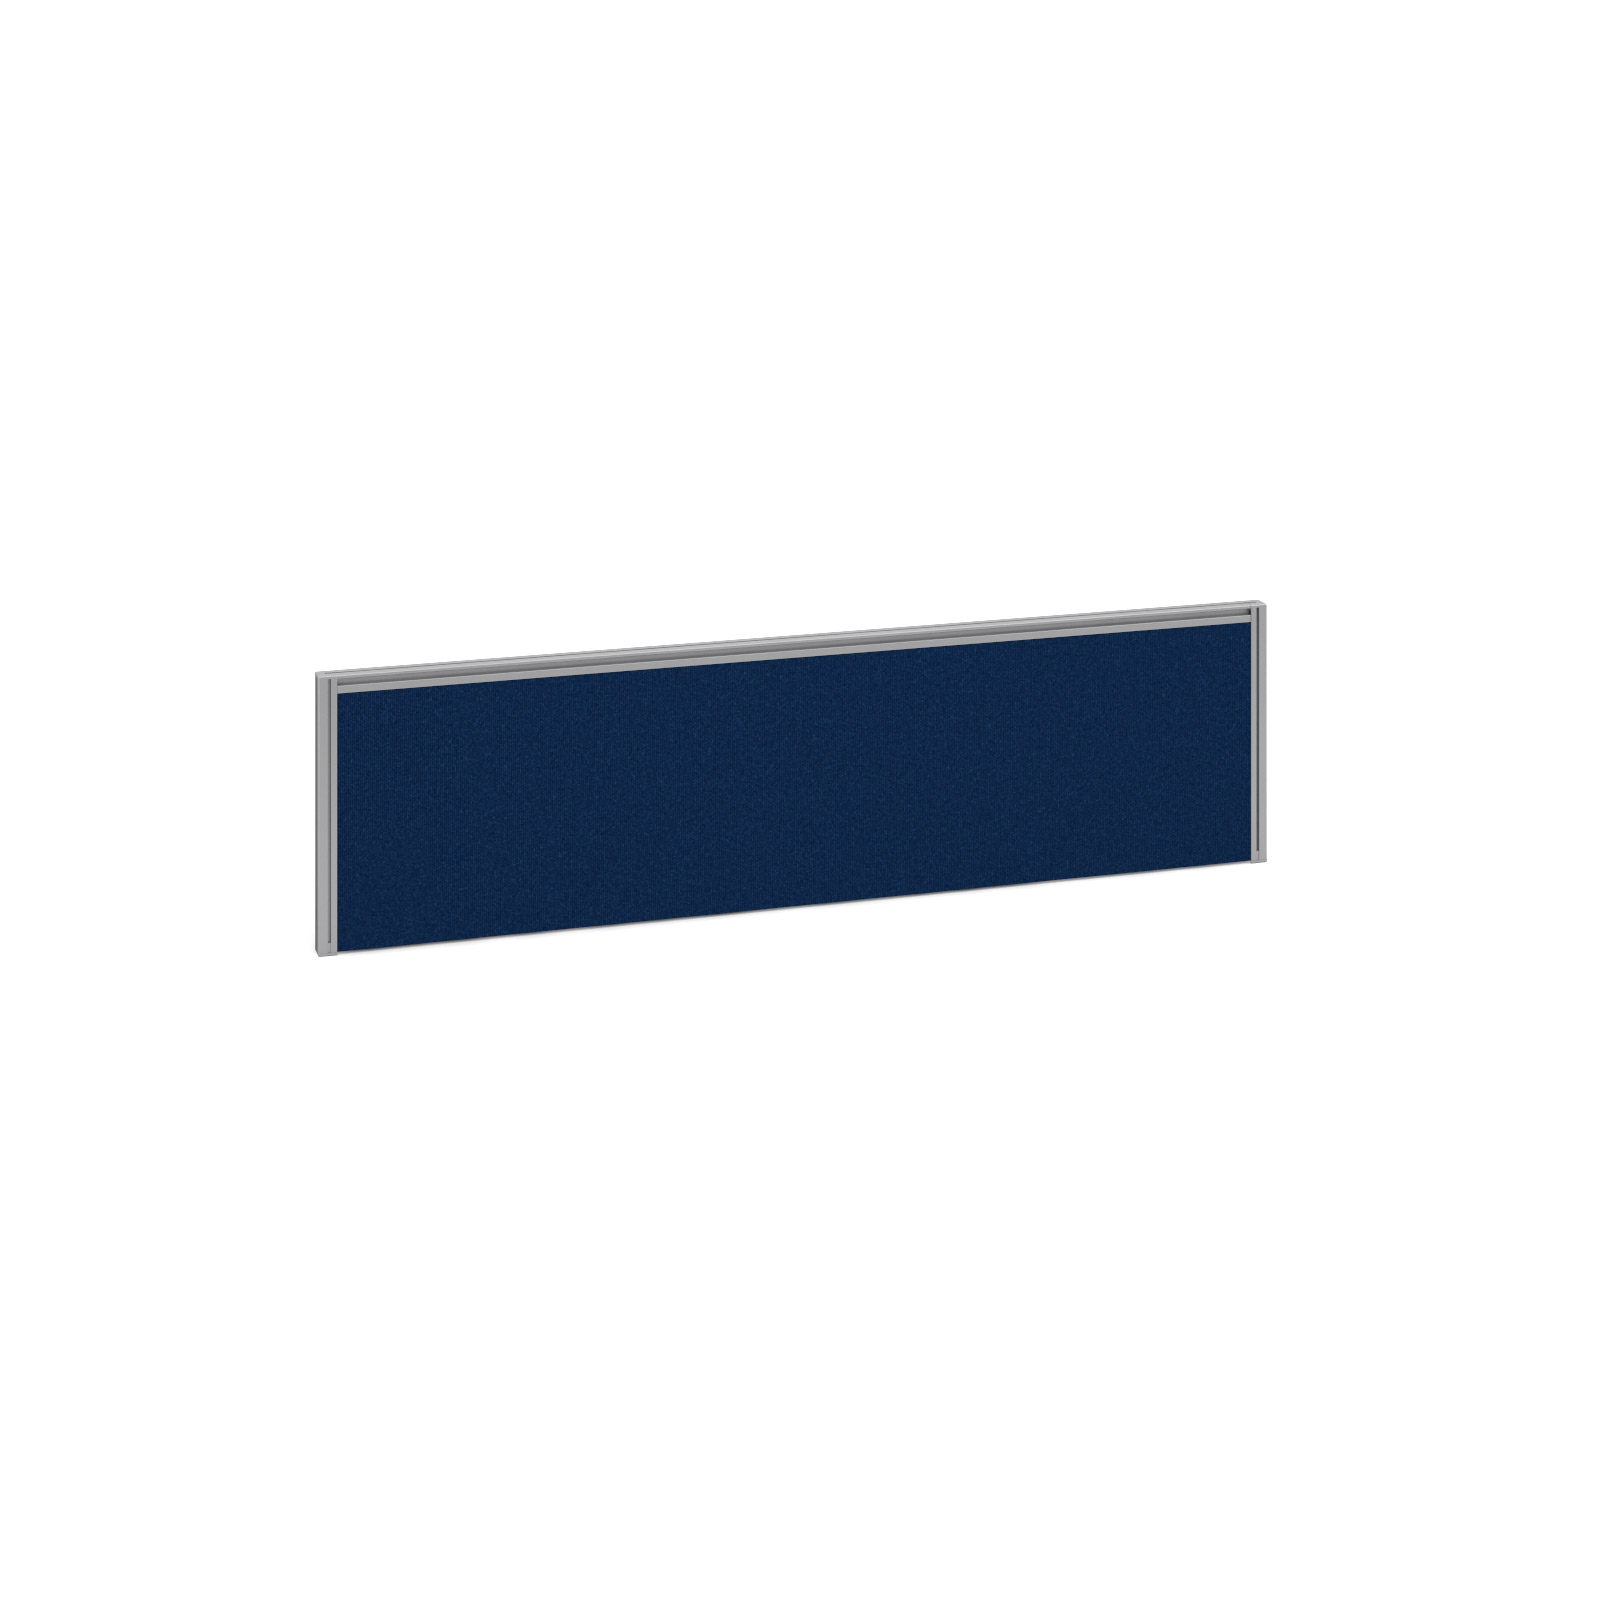 1400mm Deluxe Fabric Rear Screen -  Silver Frame - Blue Fabric